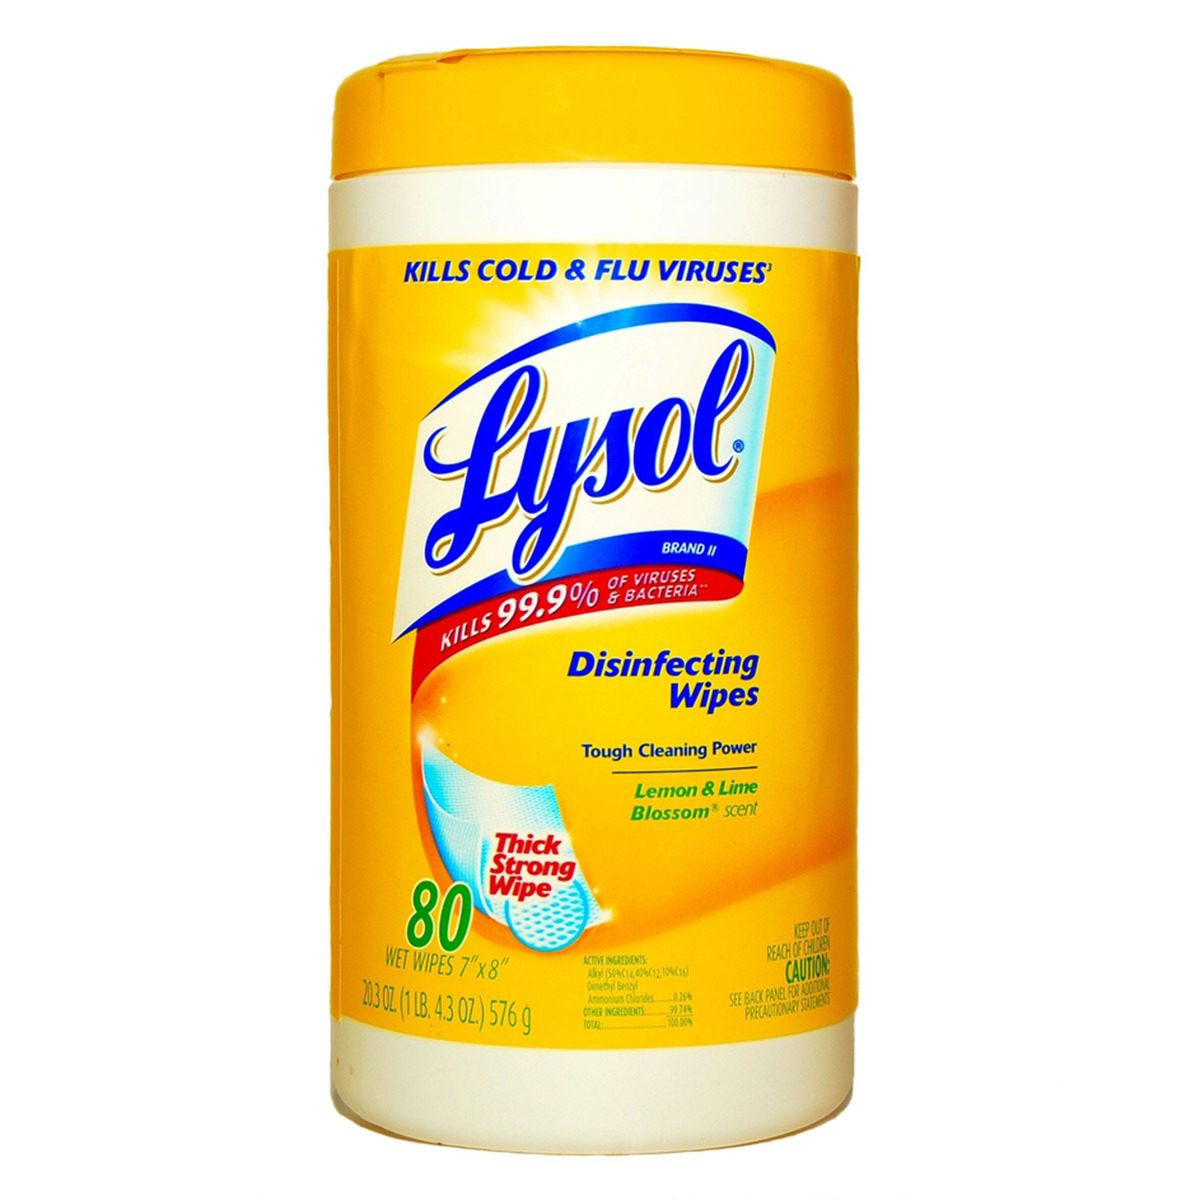 Costco Lysol Disinfecting Wipes